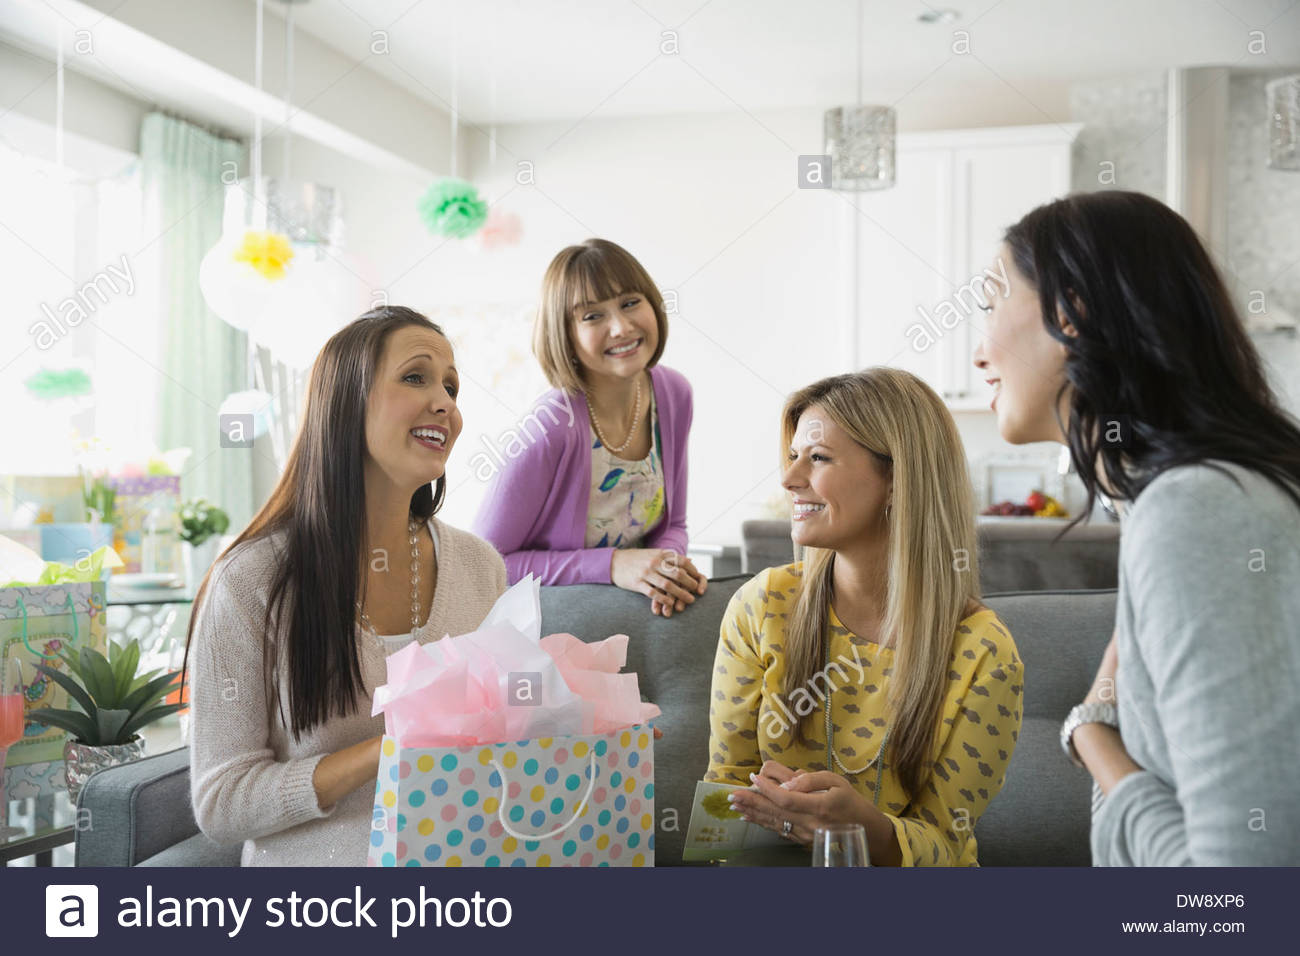 Woman opening gift at baby shower - Stock Image